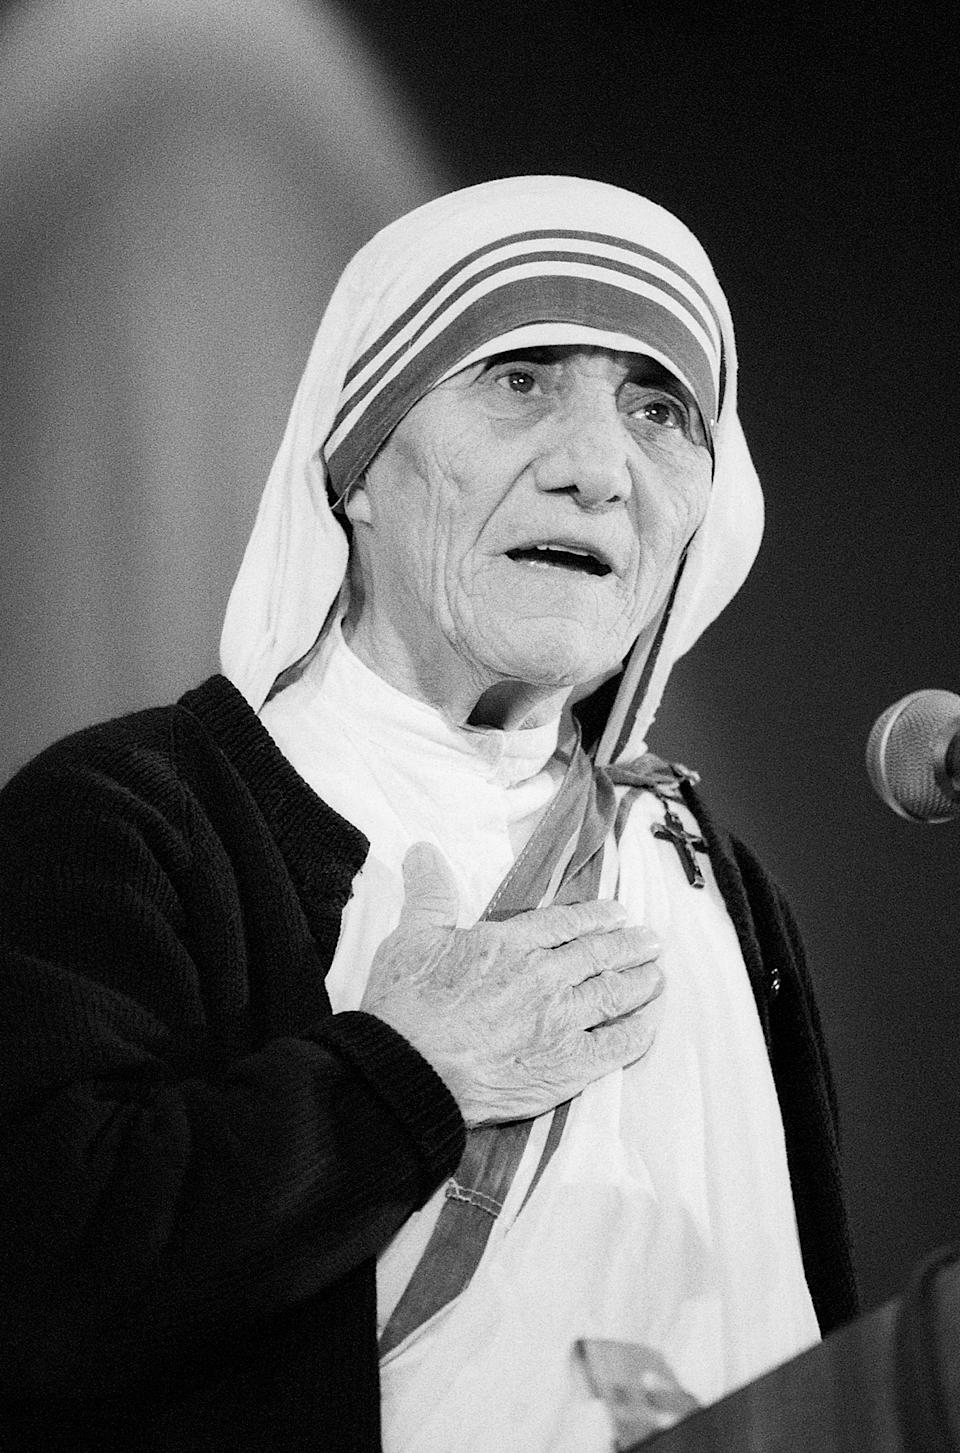 (Original Caption) 6/21/1985 - Washington, DC - Mother Teresa attending the National Right to Life convention in Washington DC.